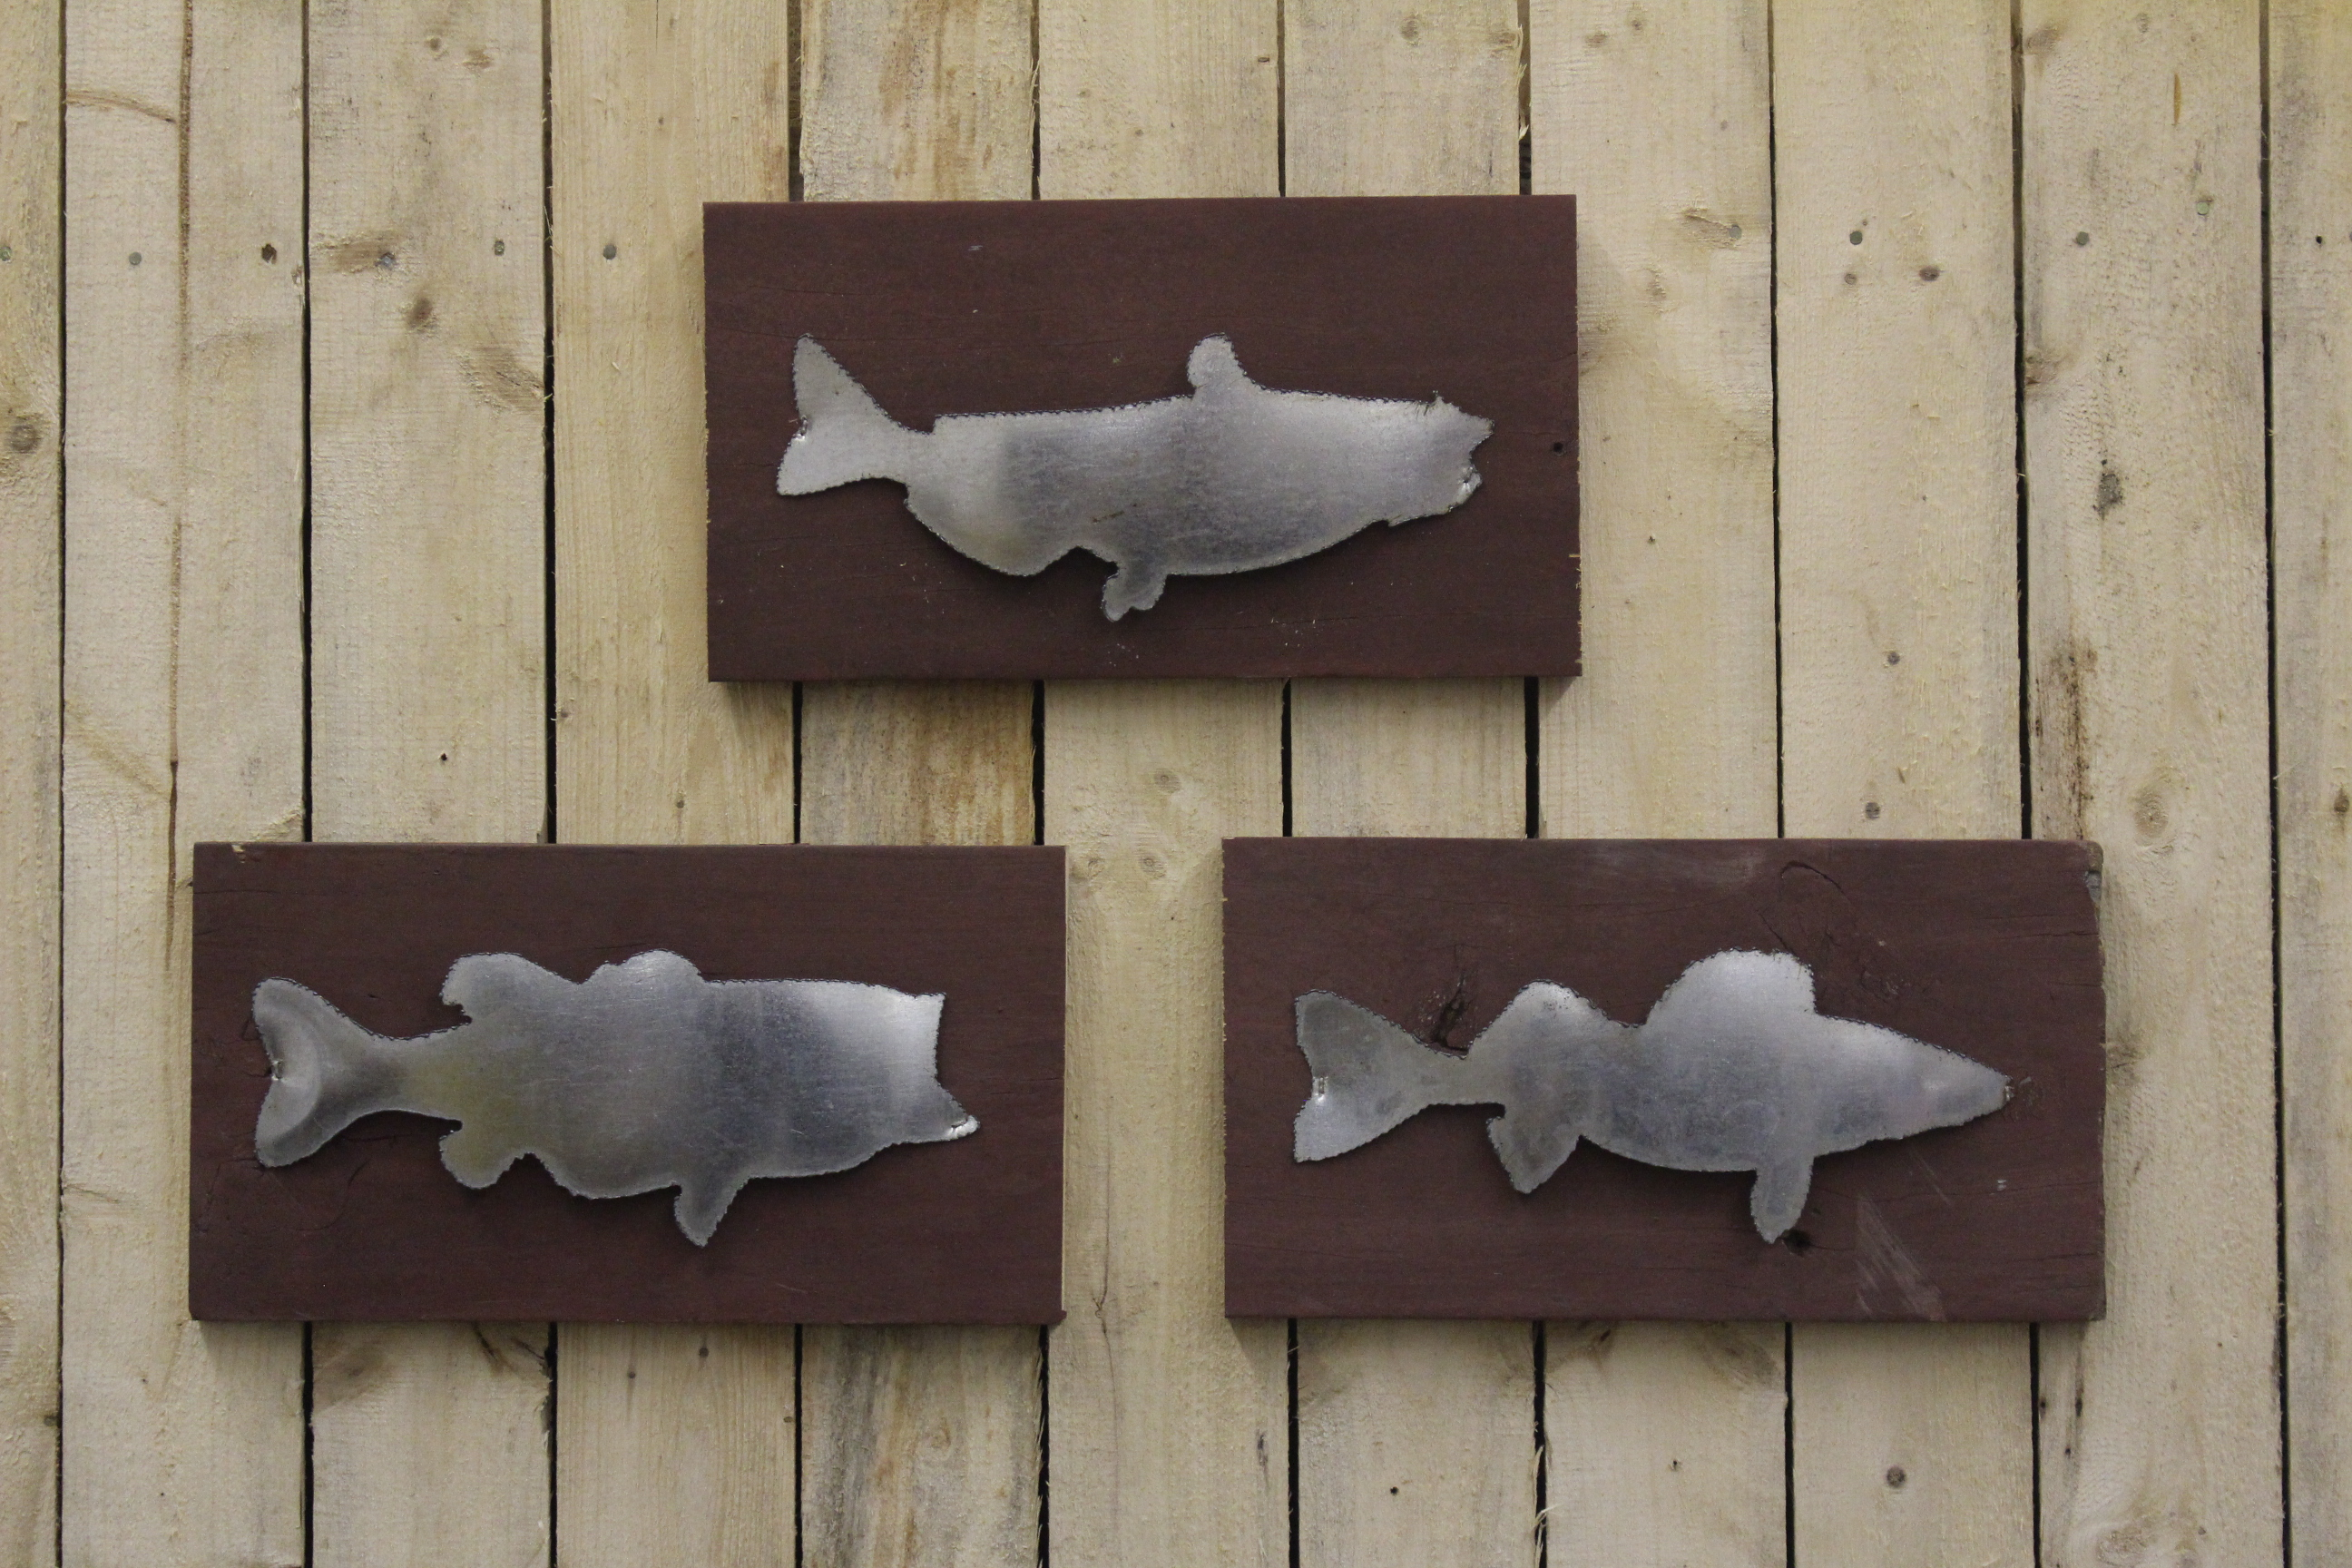 Small Rustic Metal Letters Mounted Fish  Small  Rustic Metal Letters & Wall Art